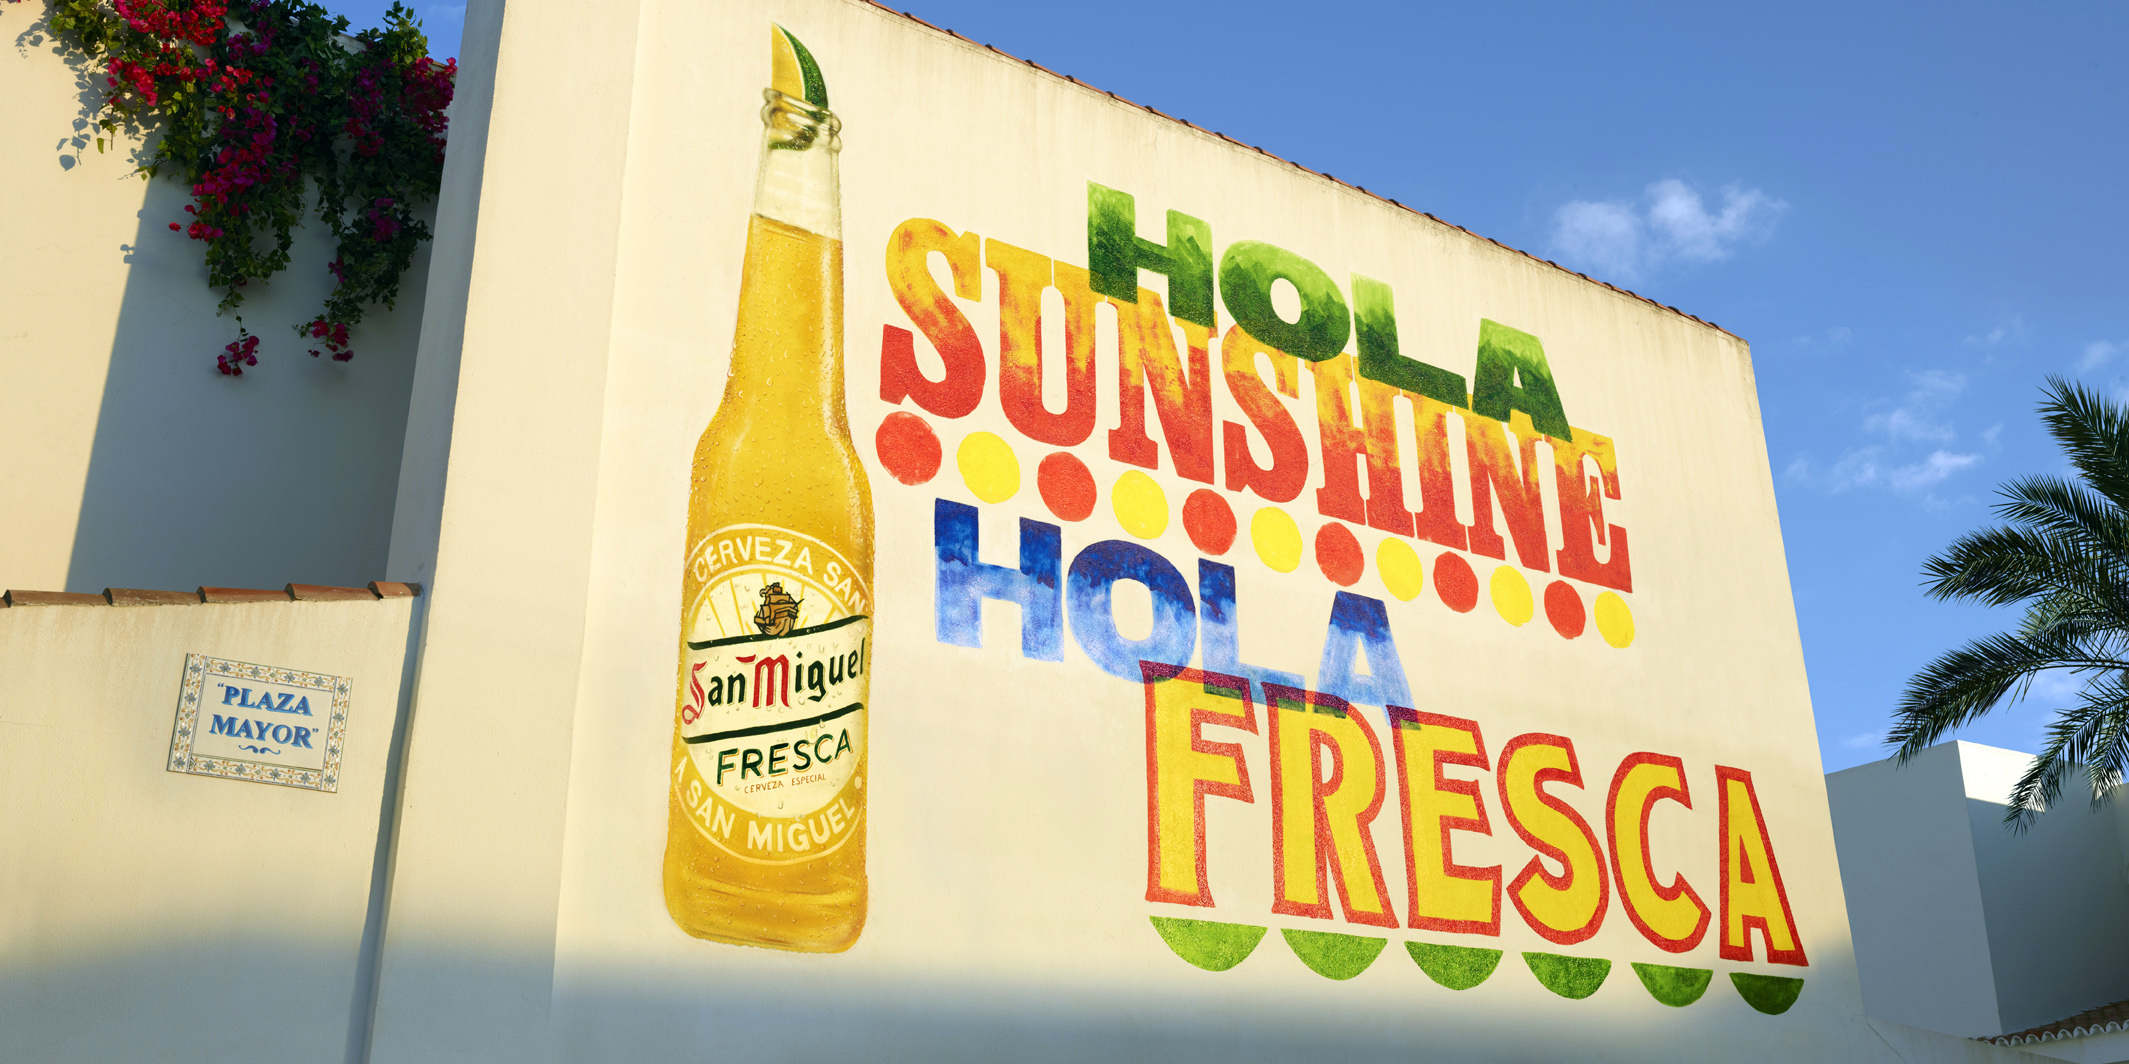 San Miguel Hola Fresca Mural Based On A Layout By Alan 48 Sheet